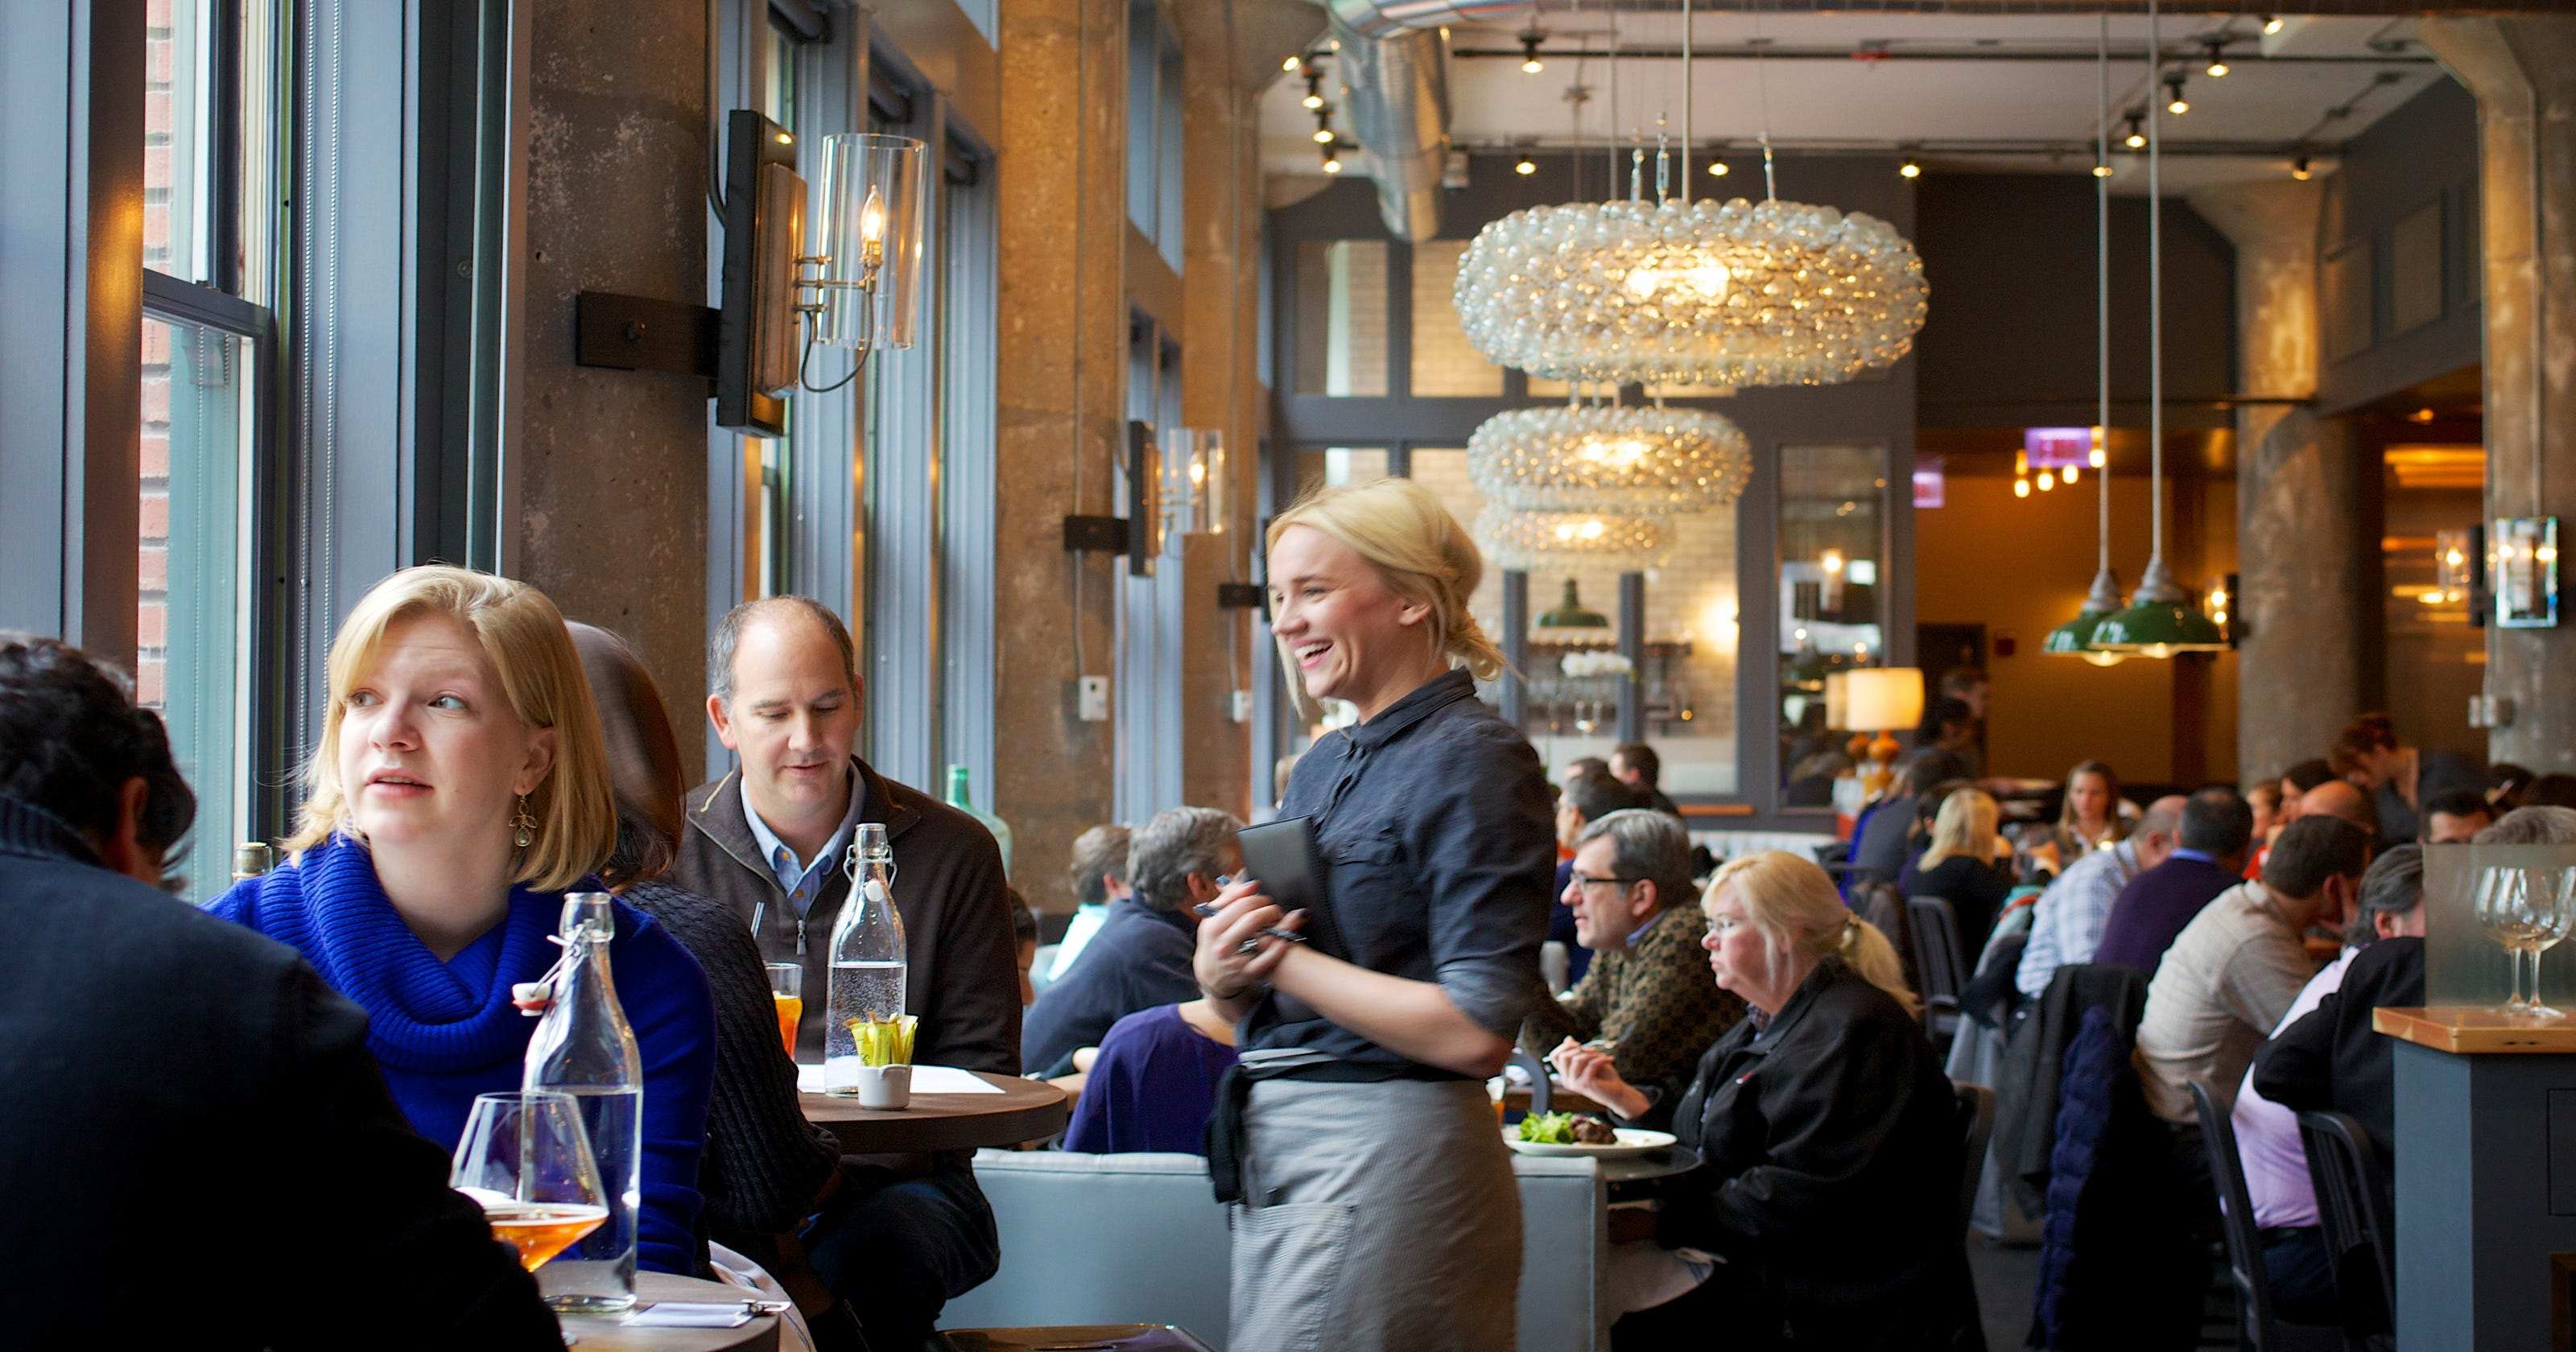 Kimbal Musk sets his sights on Indy's food scene